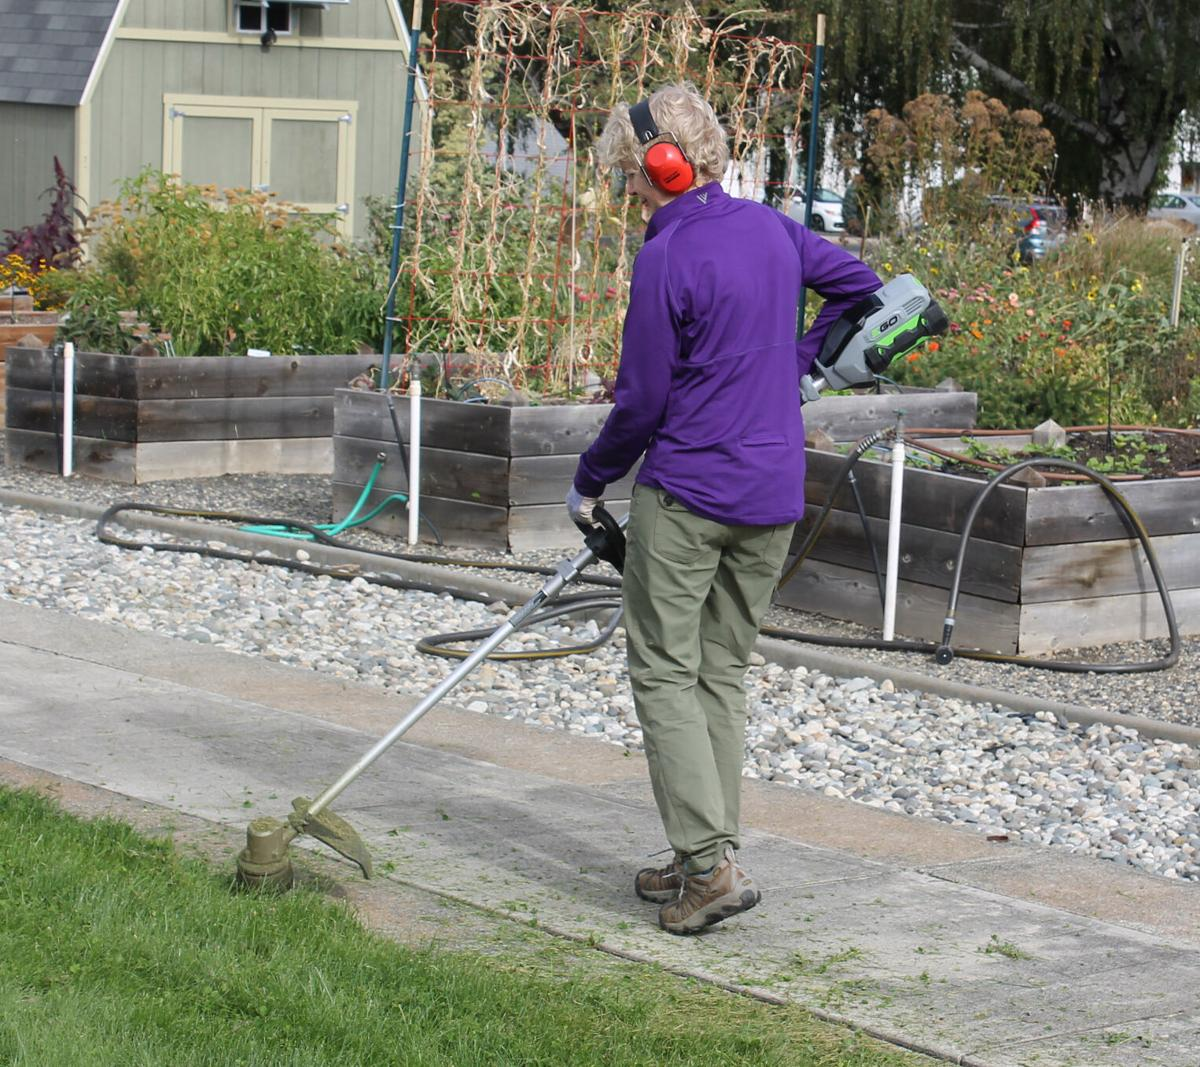 Time for end-of-season gardening